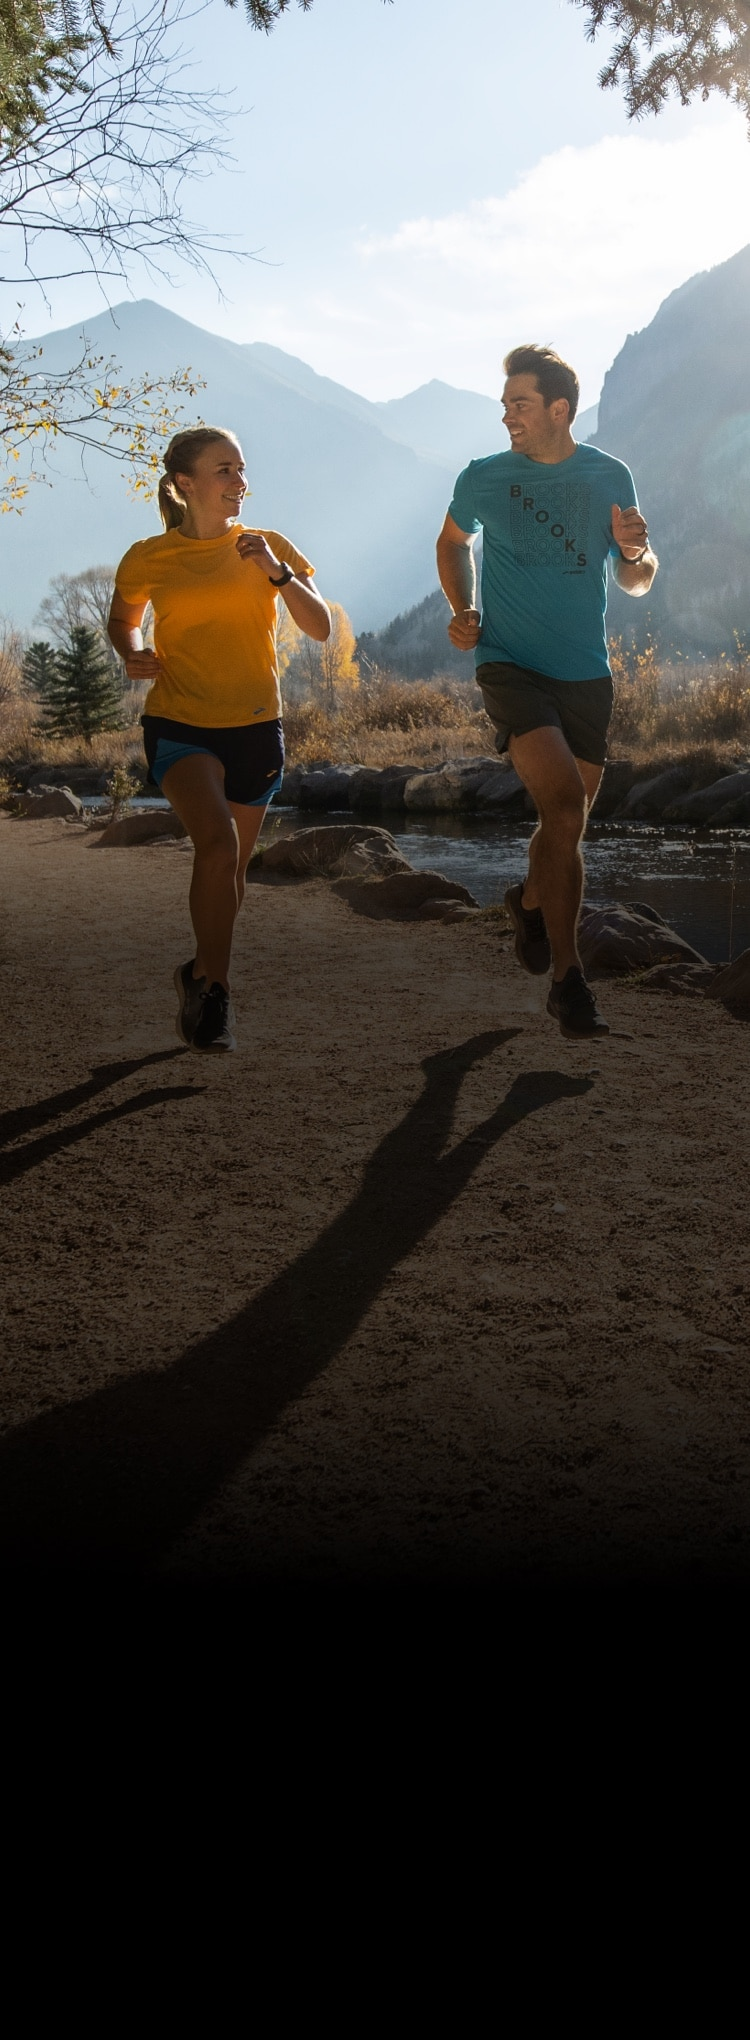 Two runnerse on a trail